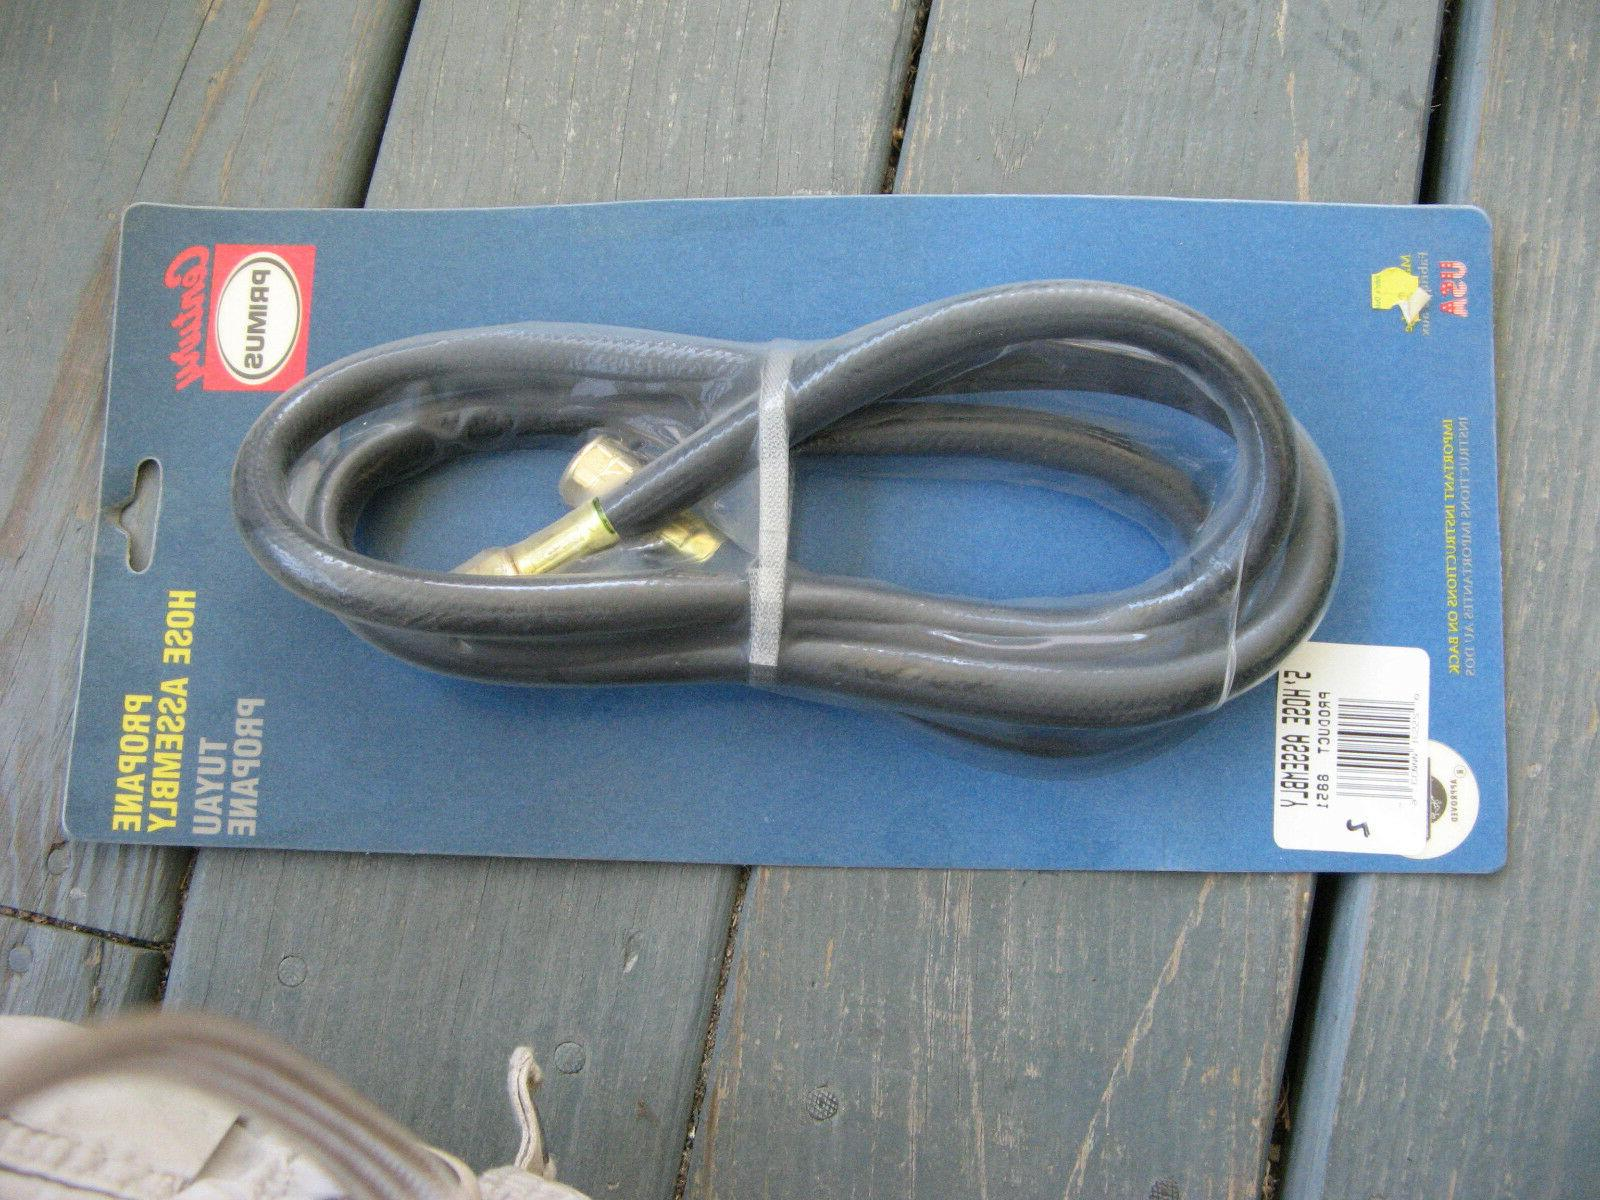 8851 5 feet propane hose assembly 9